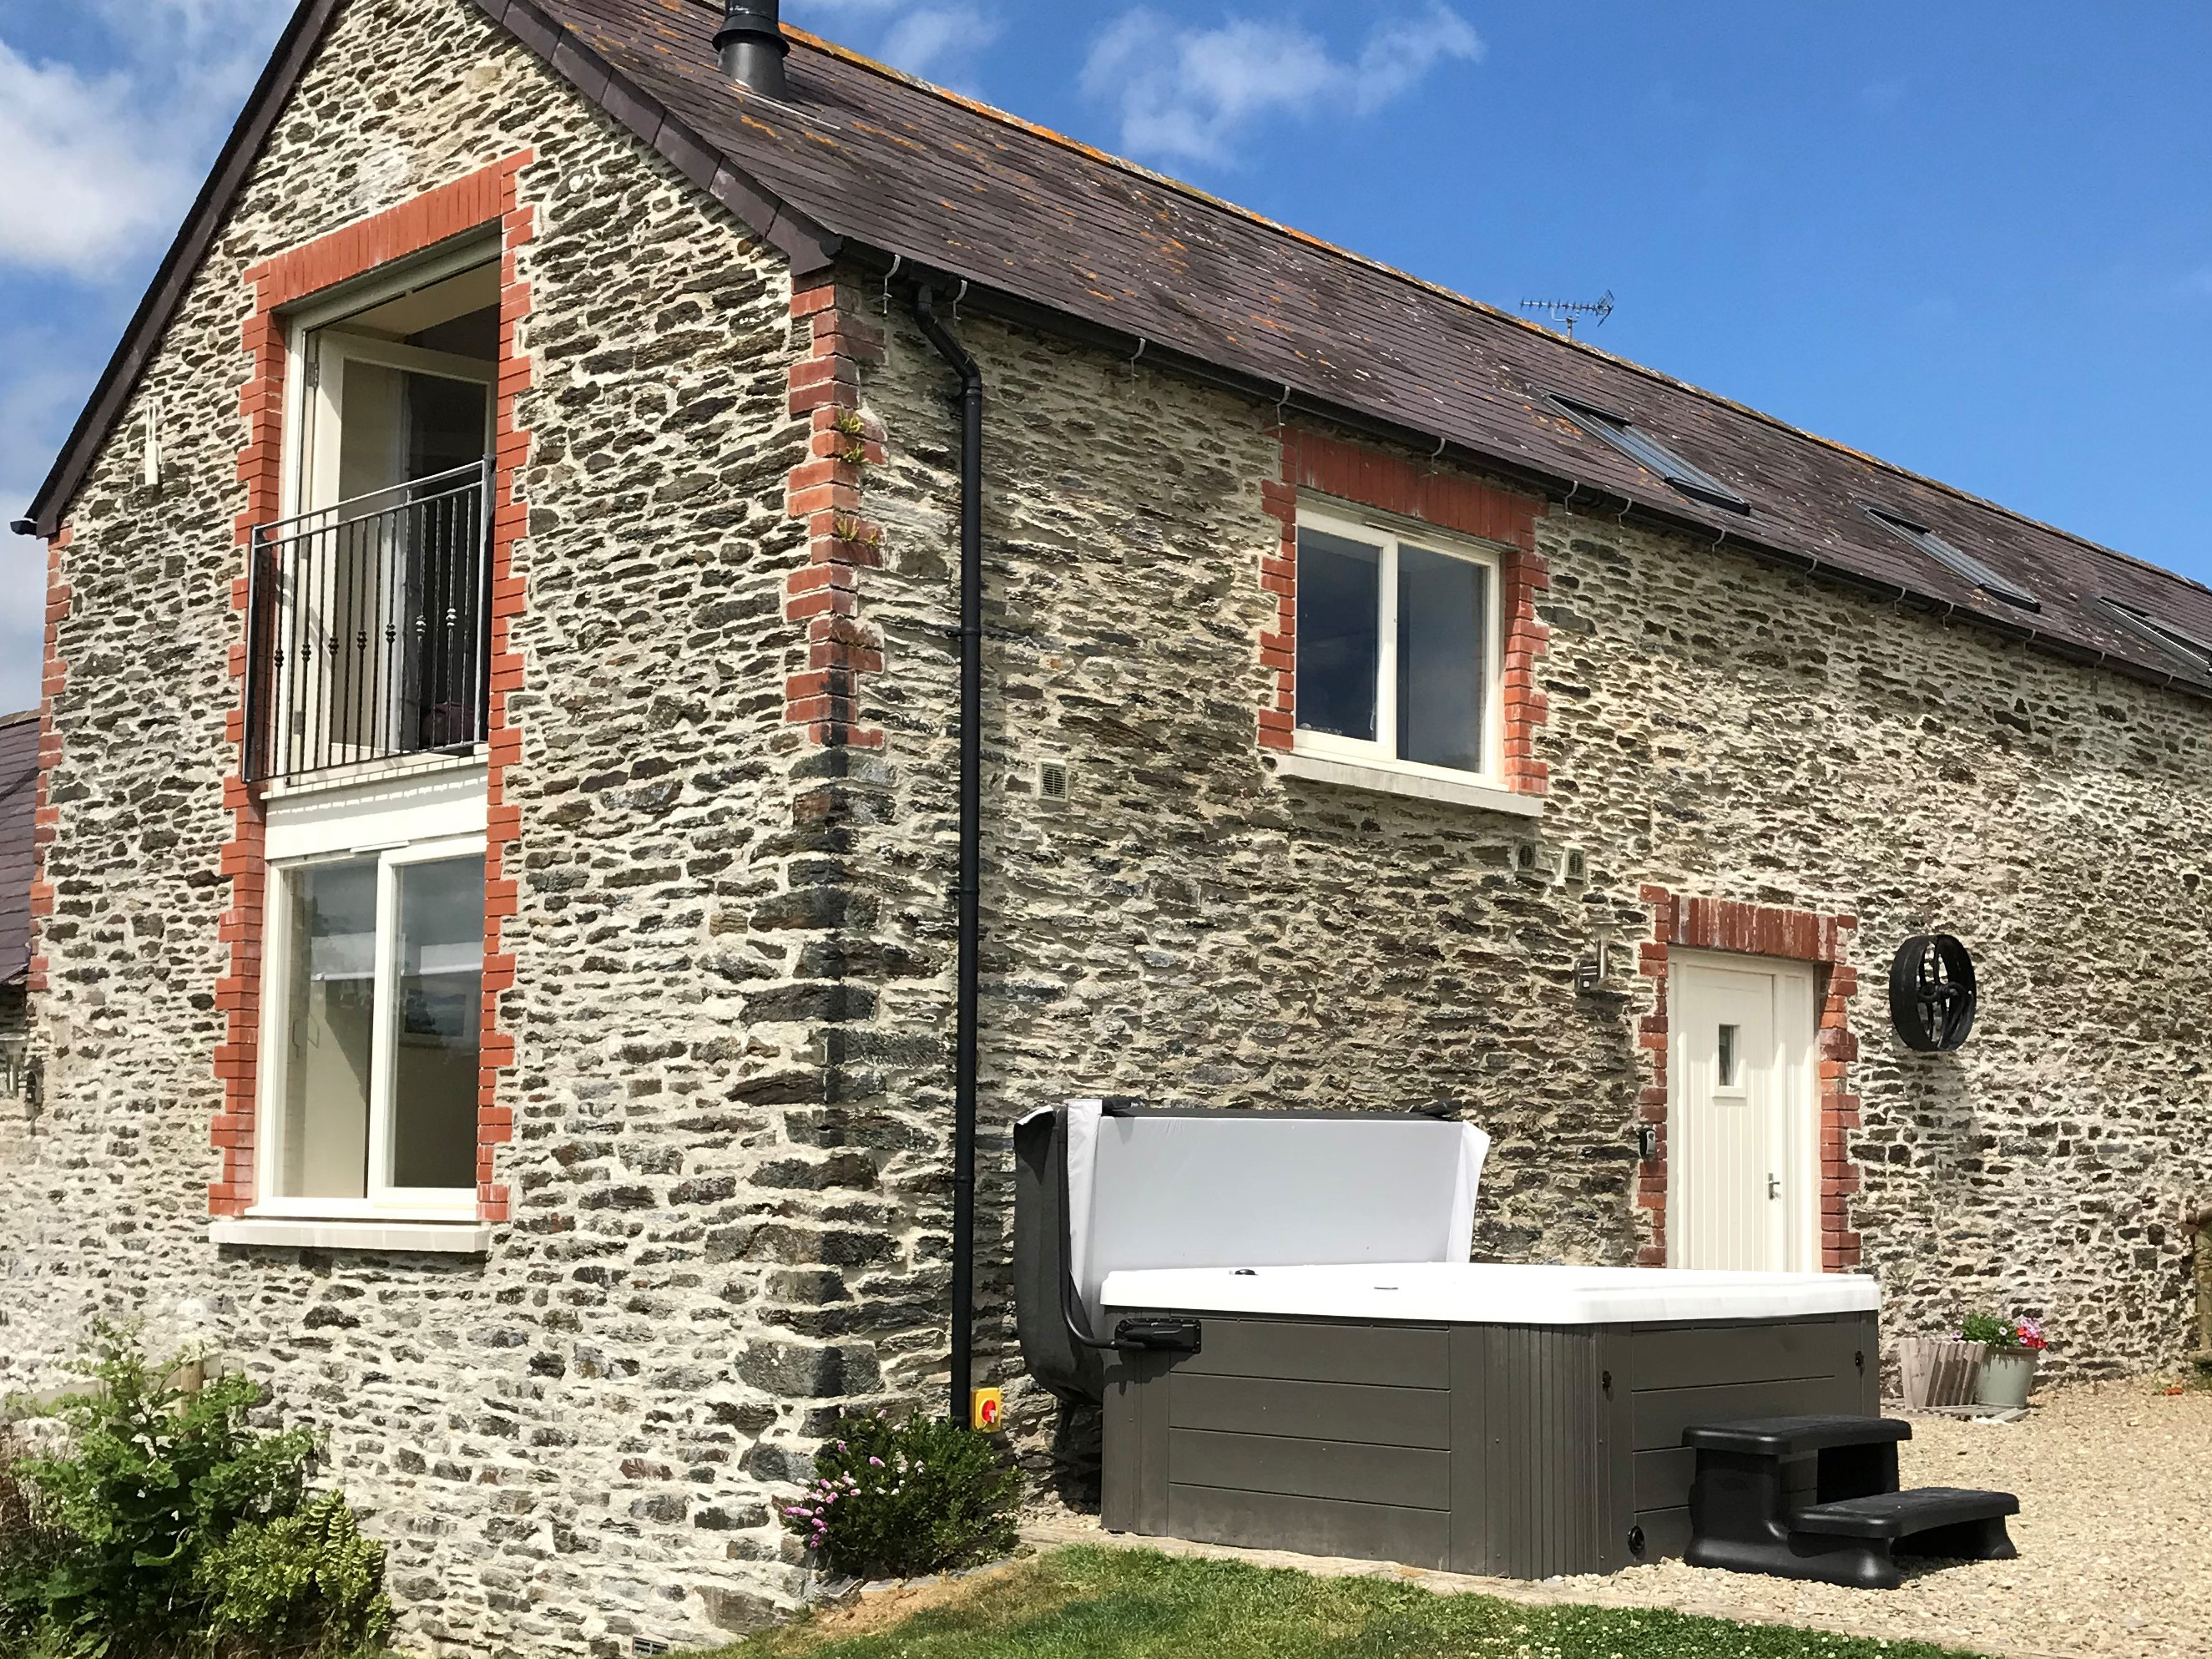 3 bedroom Cottage for rent in Cardigan